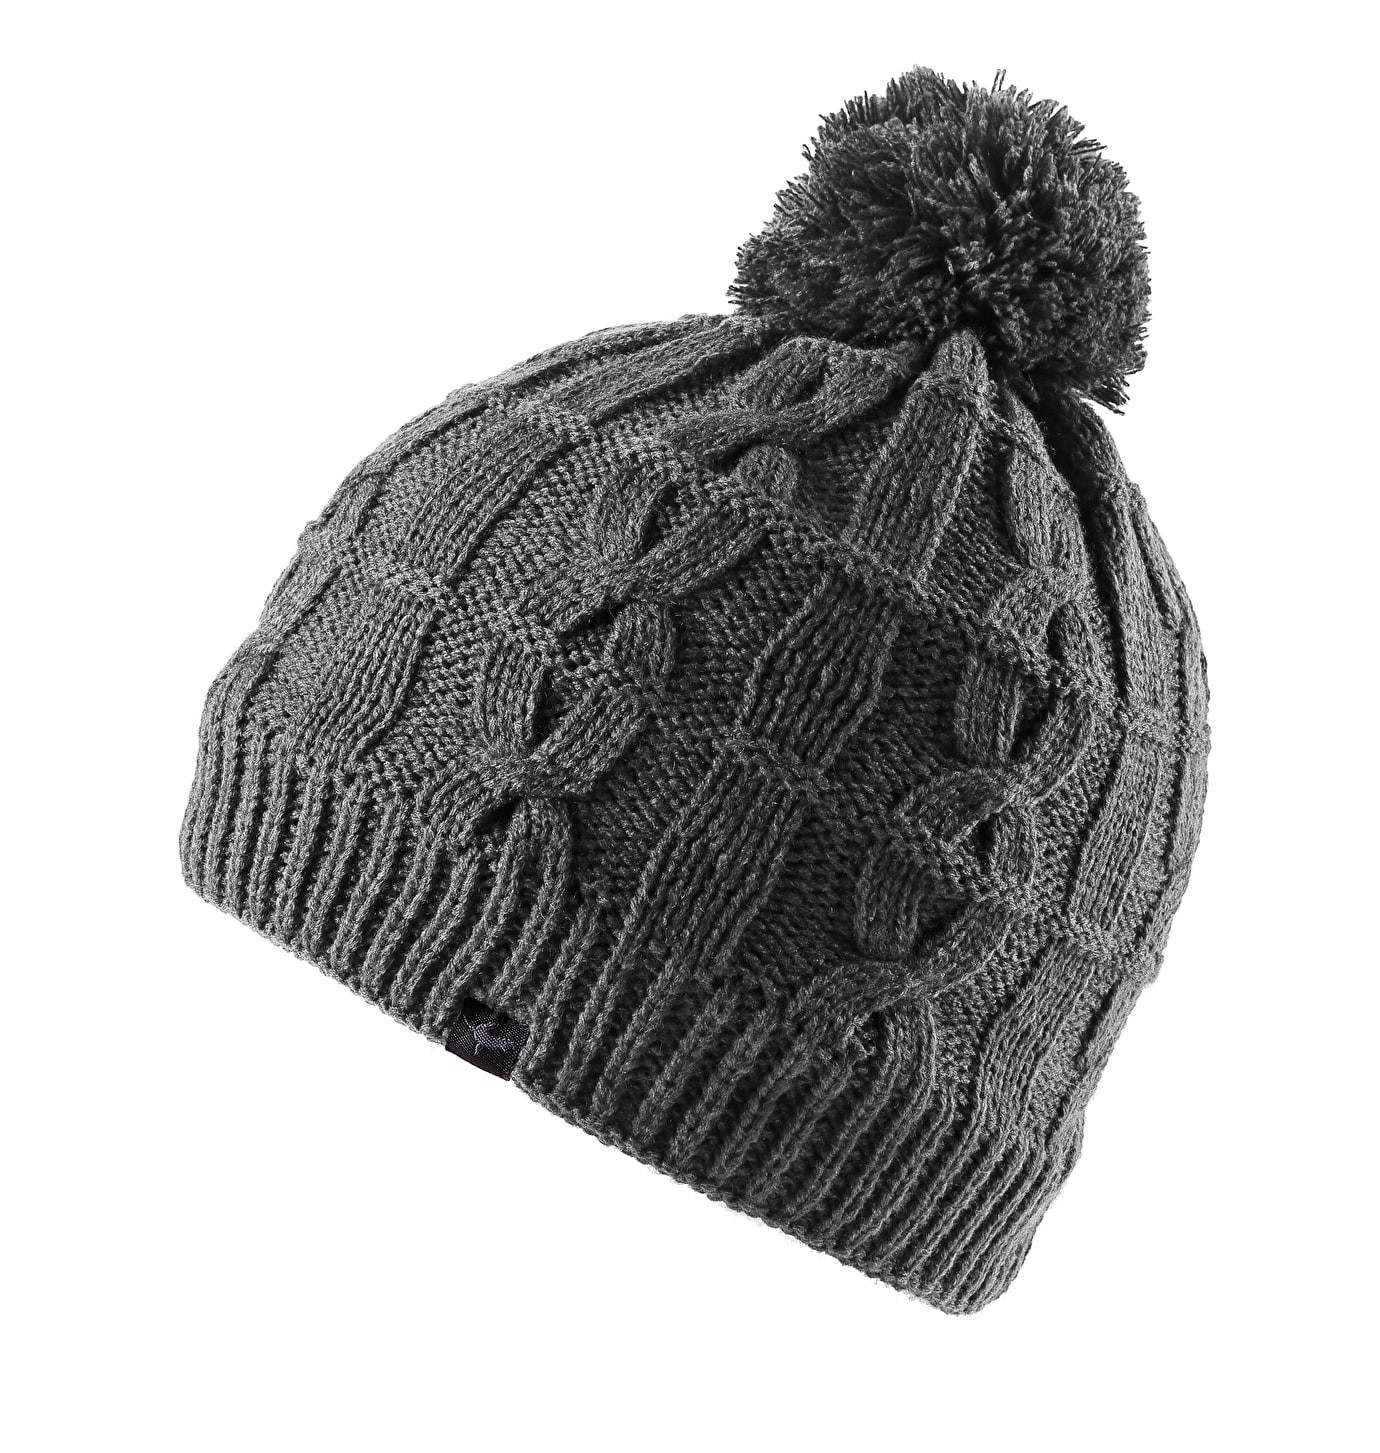 Best Of Waterproof Cable Knit Bobble Hat Cable Knit Hat Of Fresh 40 Pics Cable Knit Hat